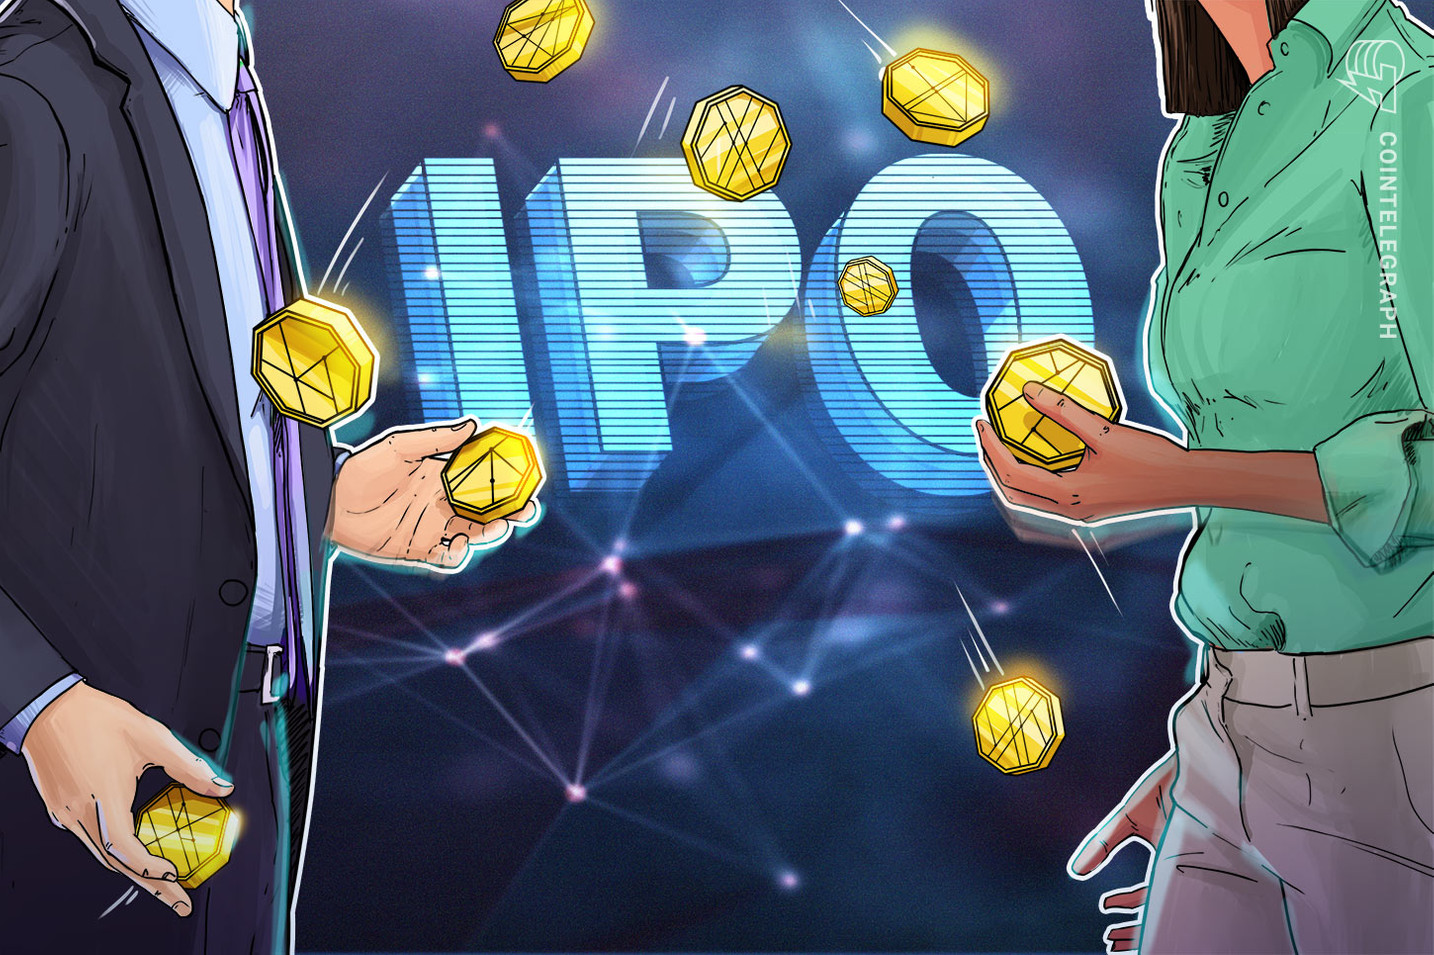 Upbit's main banker targets 2022 IPO amid massive crypto user onboarding